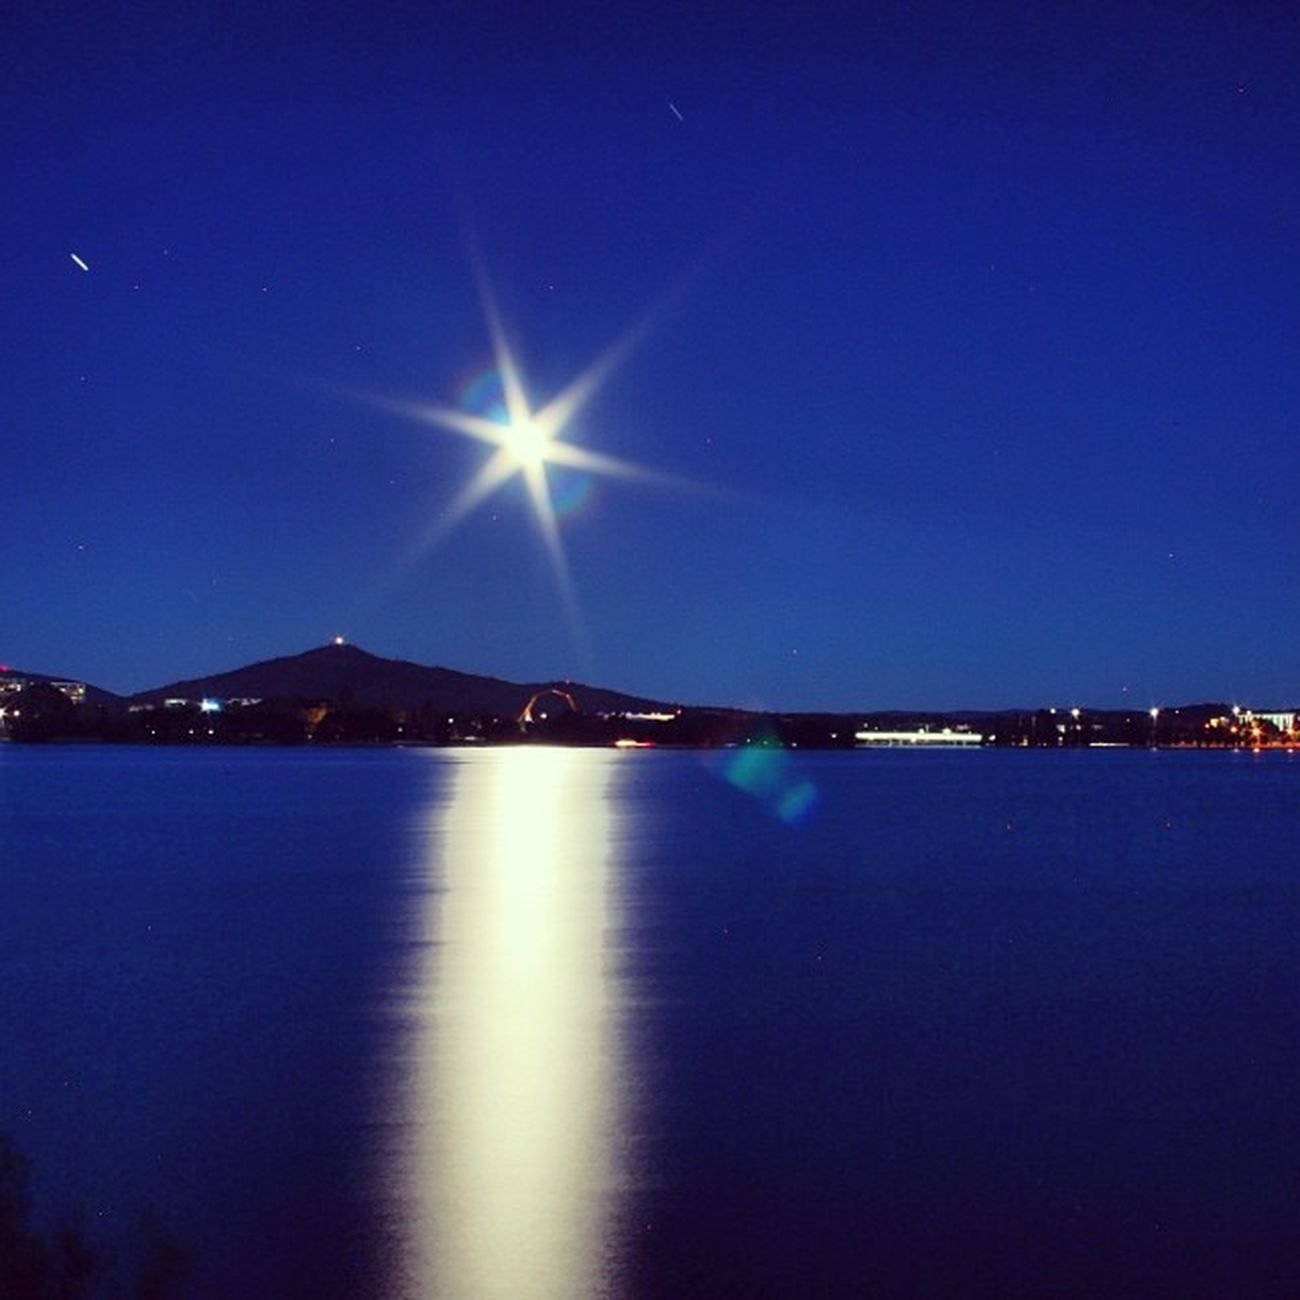 Full moon over Mount Ainslie and over the lake